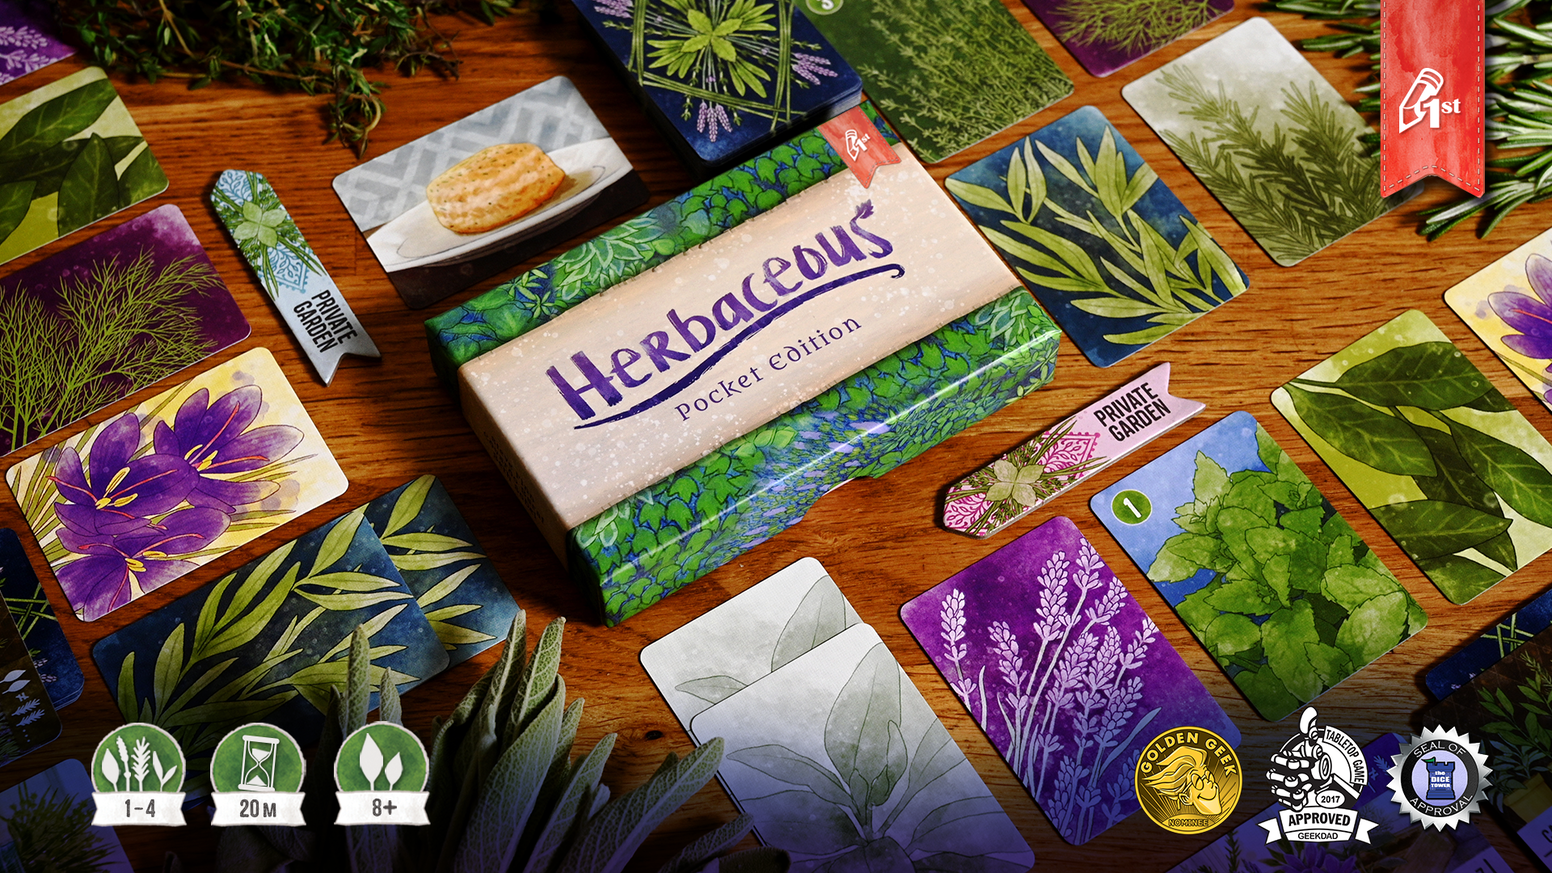 A new, compact version of Herbaceous that's just as relaxing and beautiful as the original